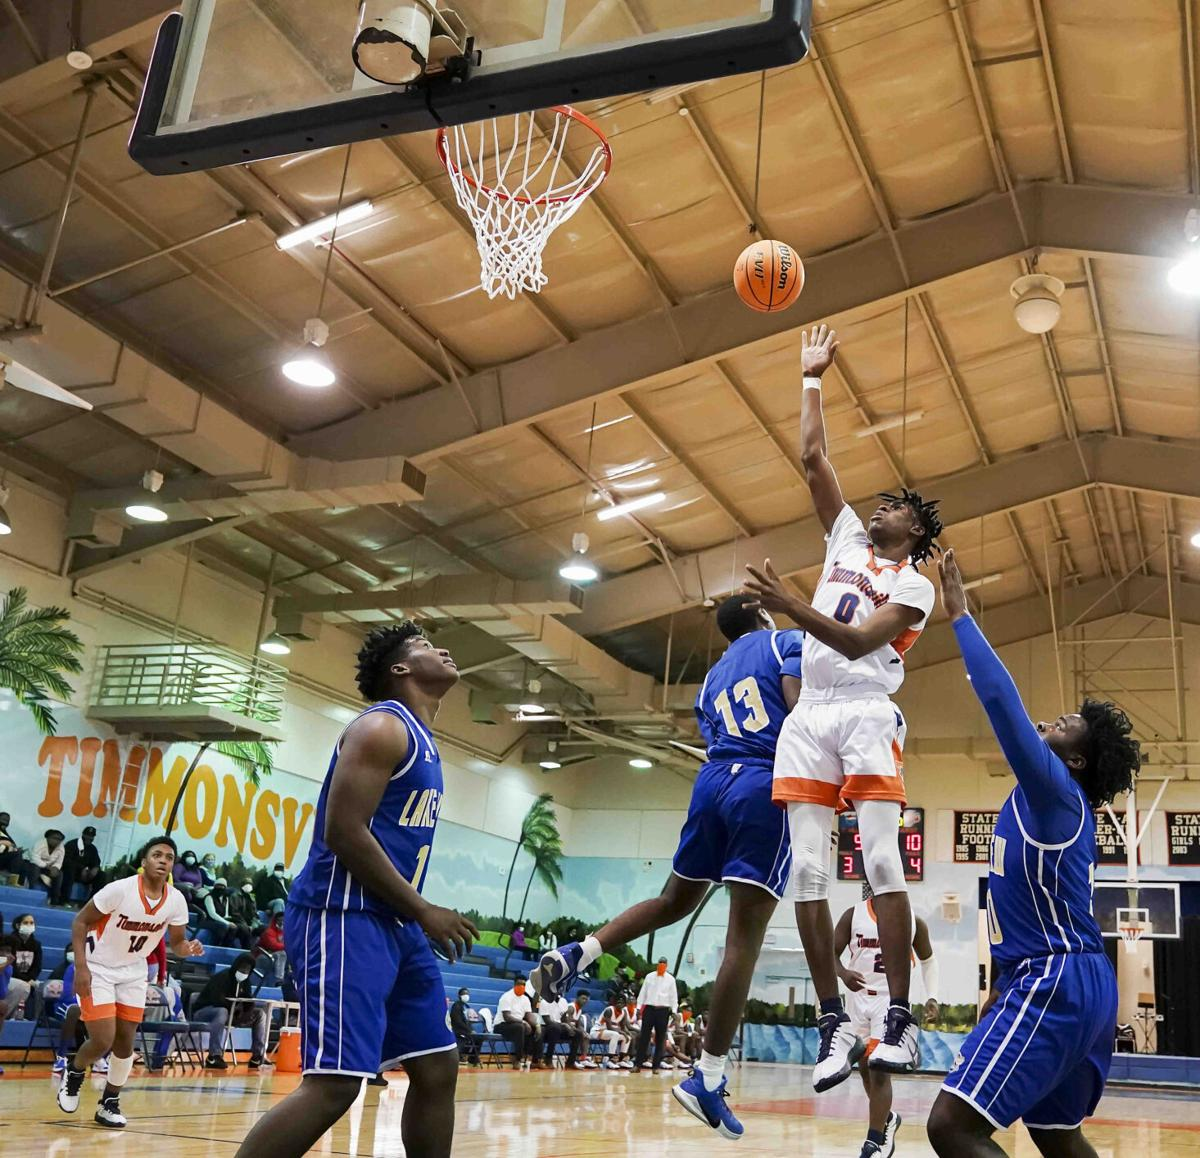 Timmonsville vs. Lake View boys